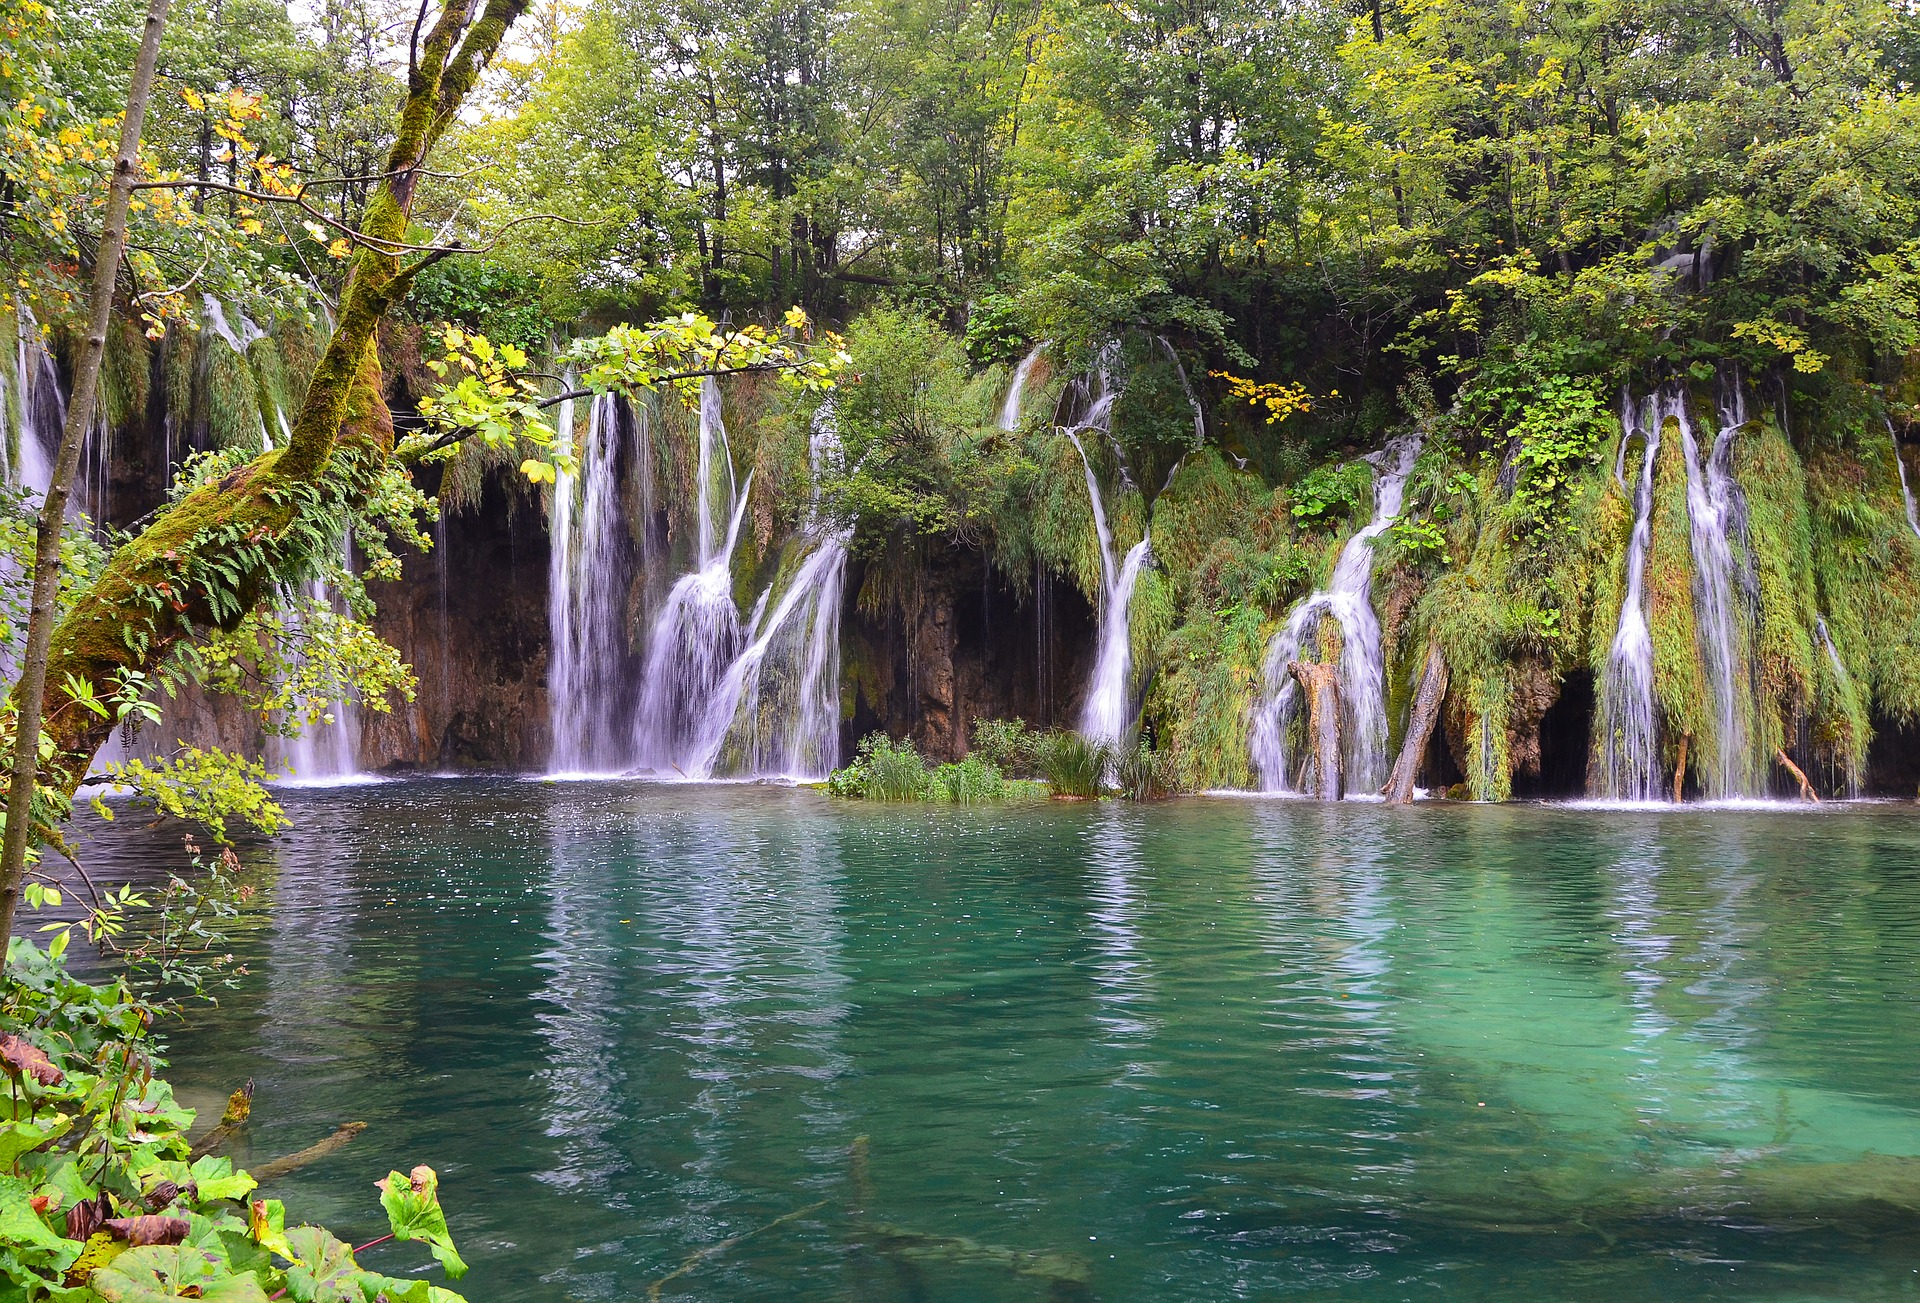 Plitvice National Park in Croatia